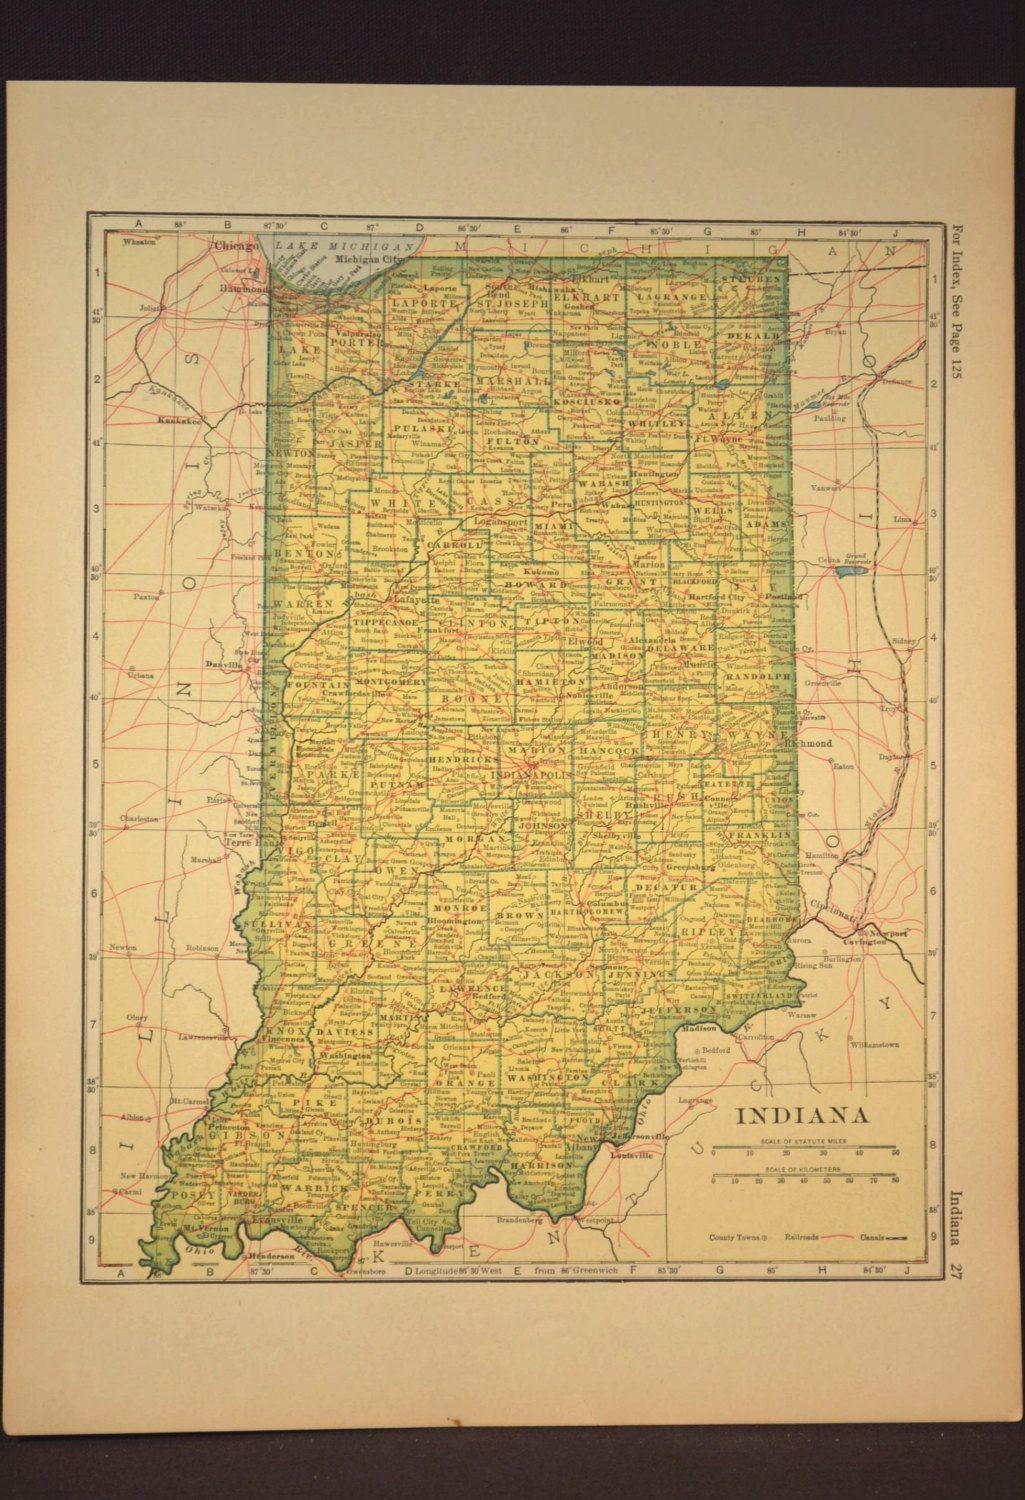 Indiana Map Indiana Antique Railroad Original 1920s Yellow | Map ...